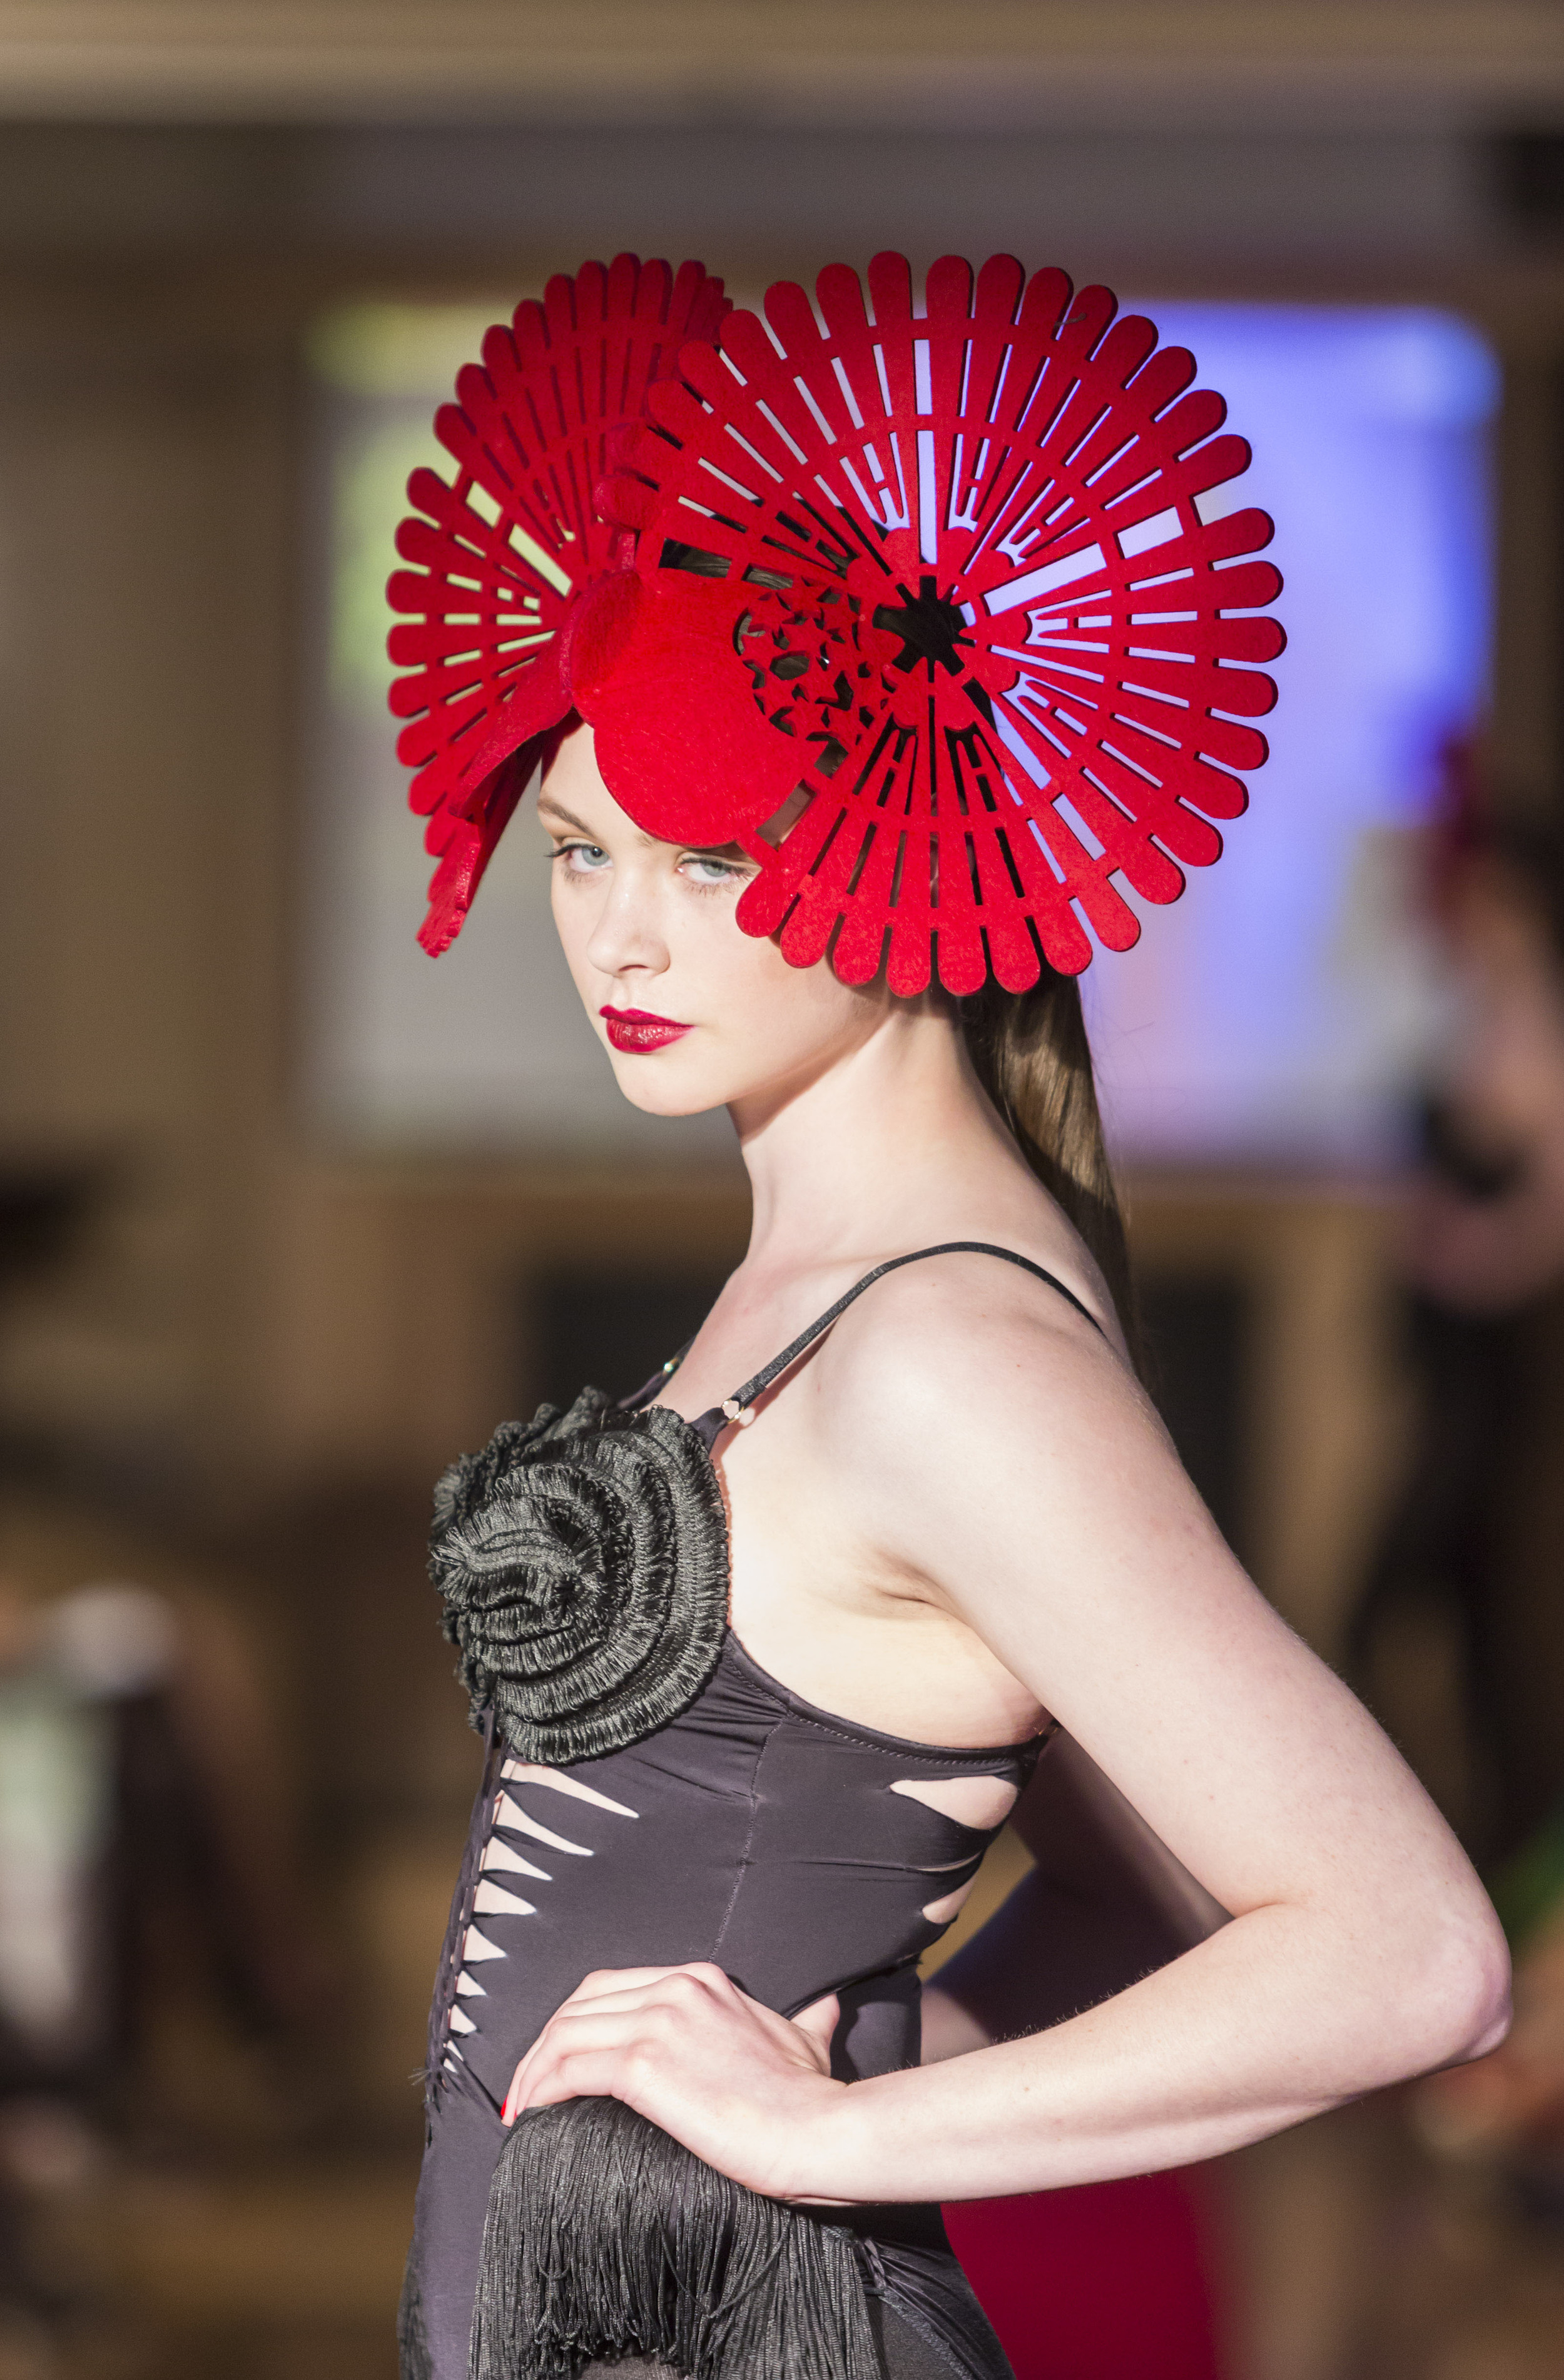 Model Aoife Healy at Upfront Model Management wearing a headpiece by Michael Leong at the KFW Show in Ballygarry House 2012. Pix: Barry Murphy